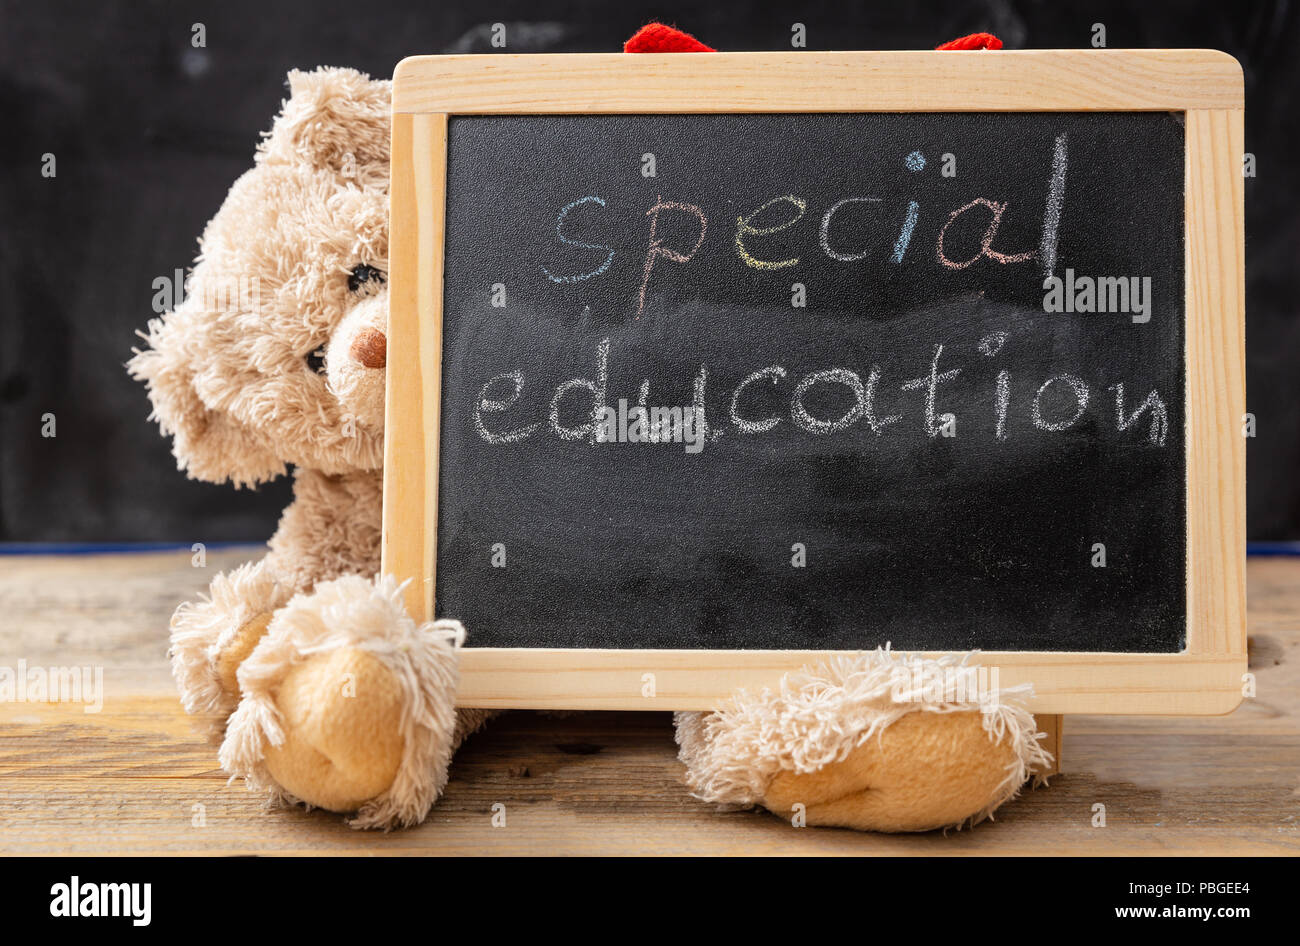 Special education. Teddy bear hiding behind a blackboard. Special education text drawing on the blackboard - Stock Image